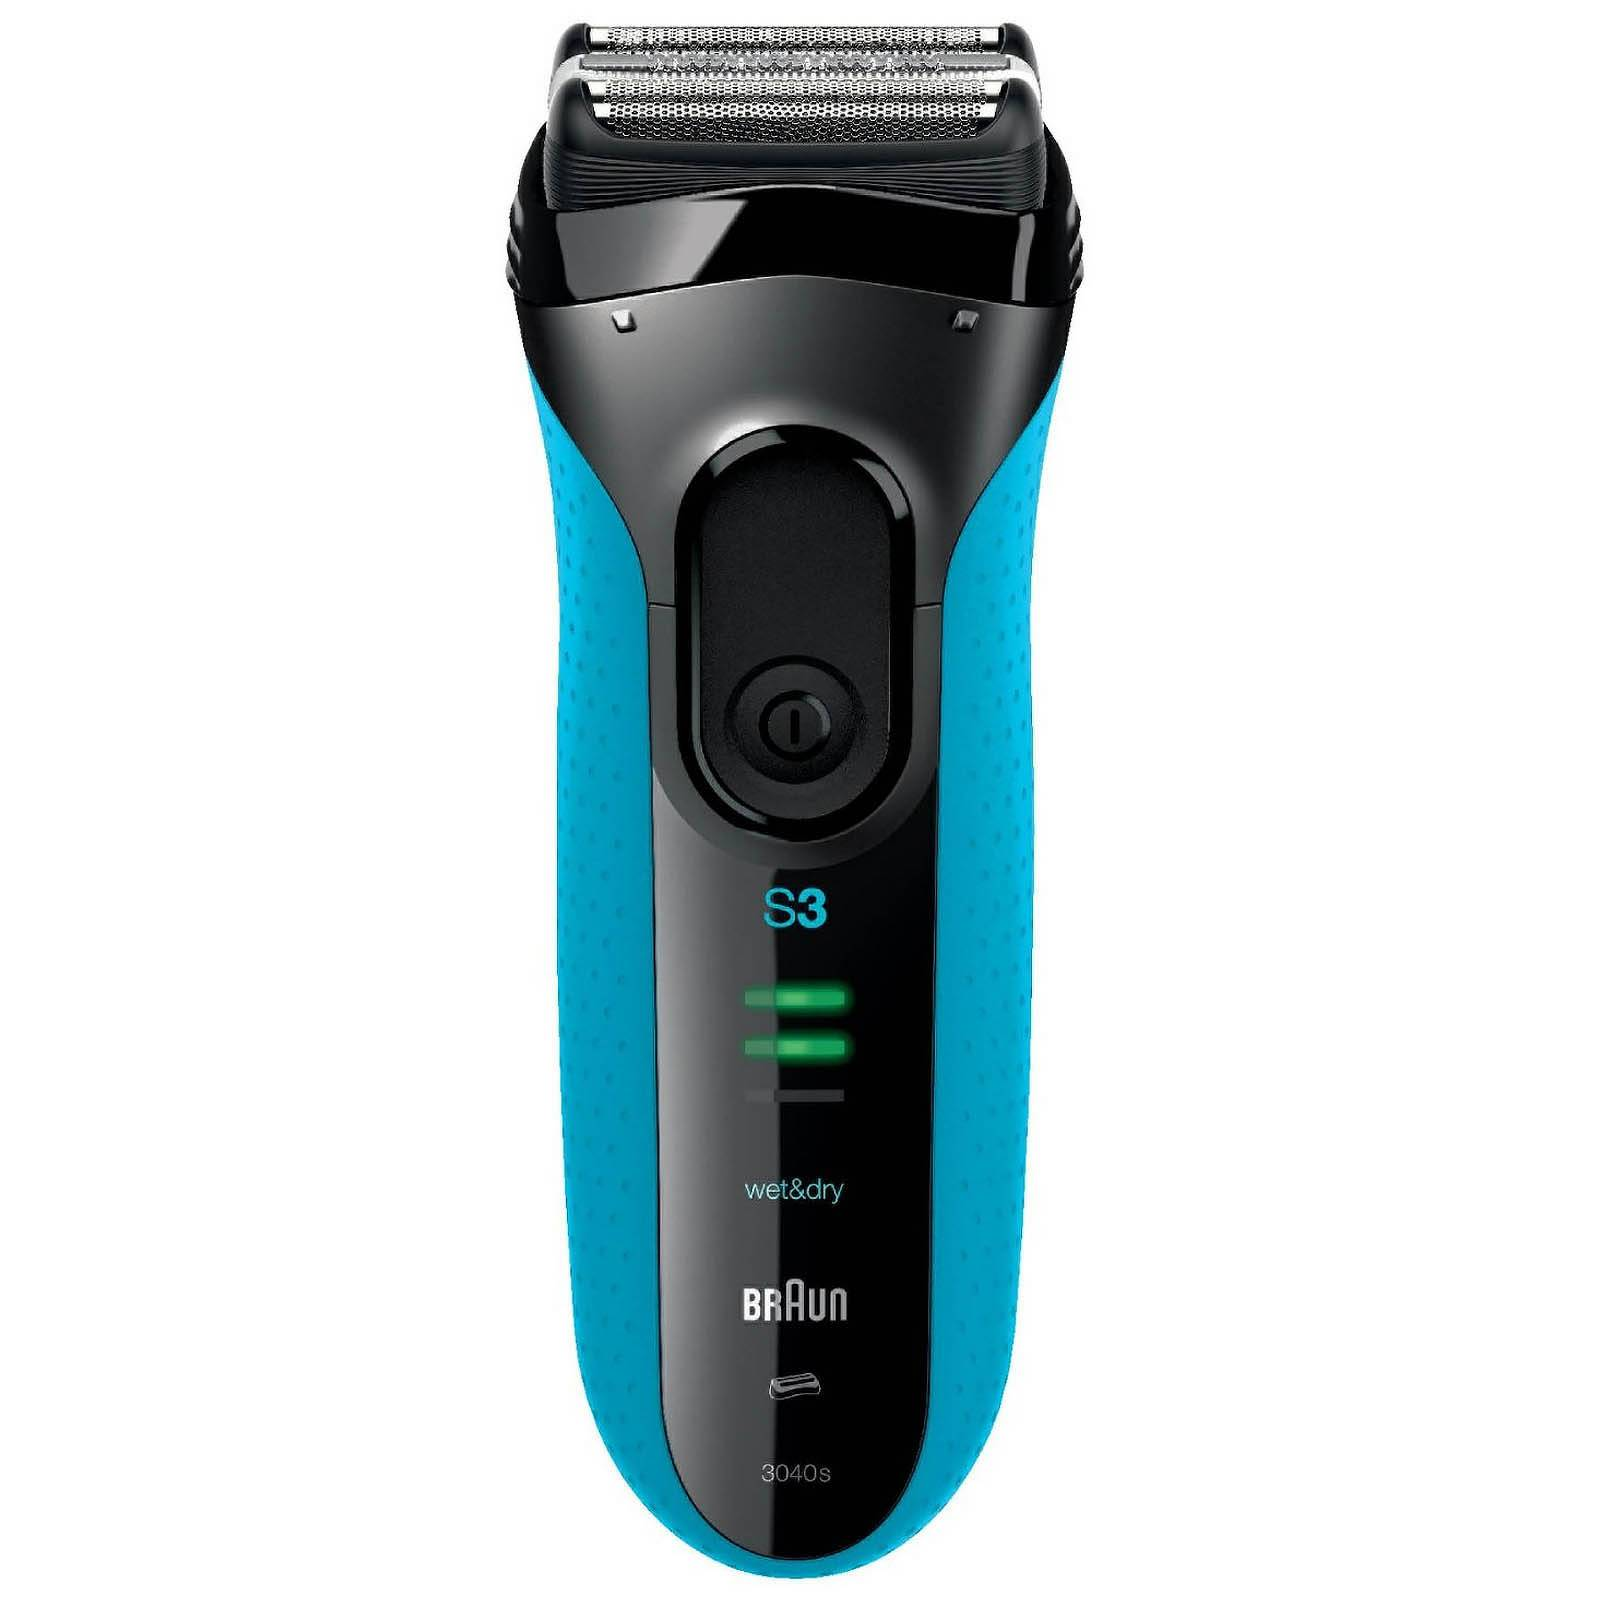 Braun - Series Shavers Series 3 ProSkin 3040s Wet & Dry Shaver with Protection Cap for Men